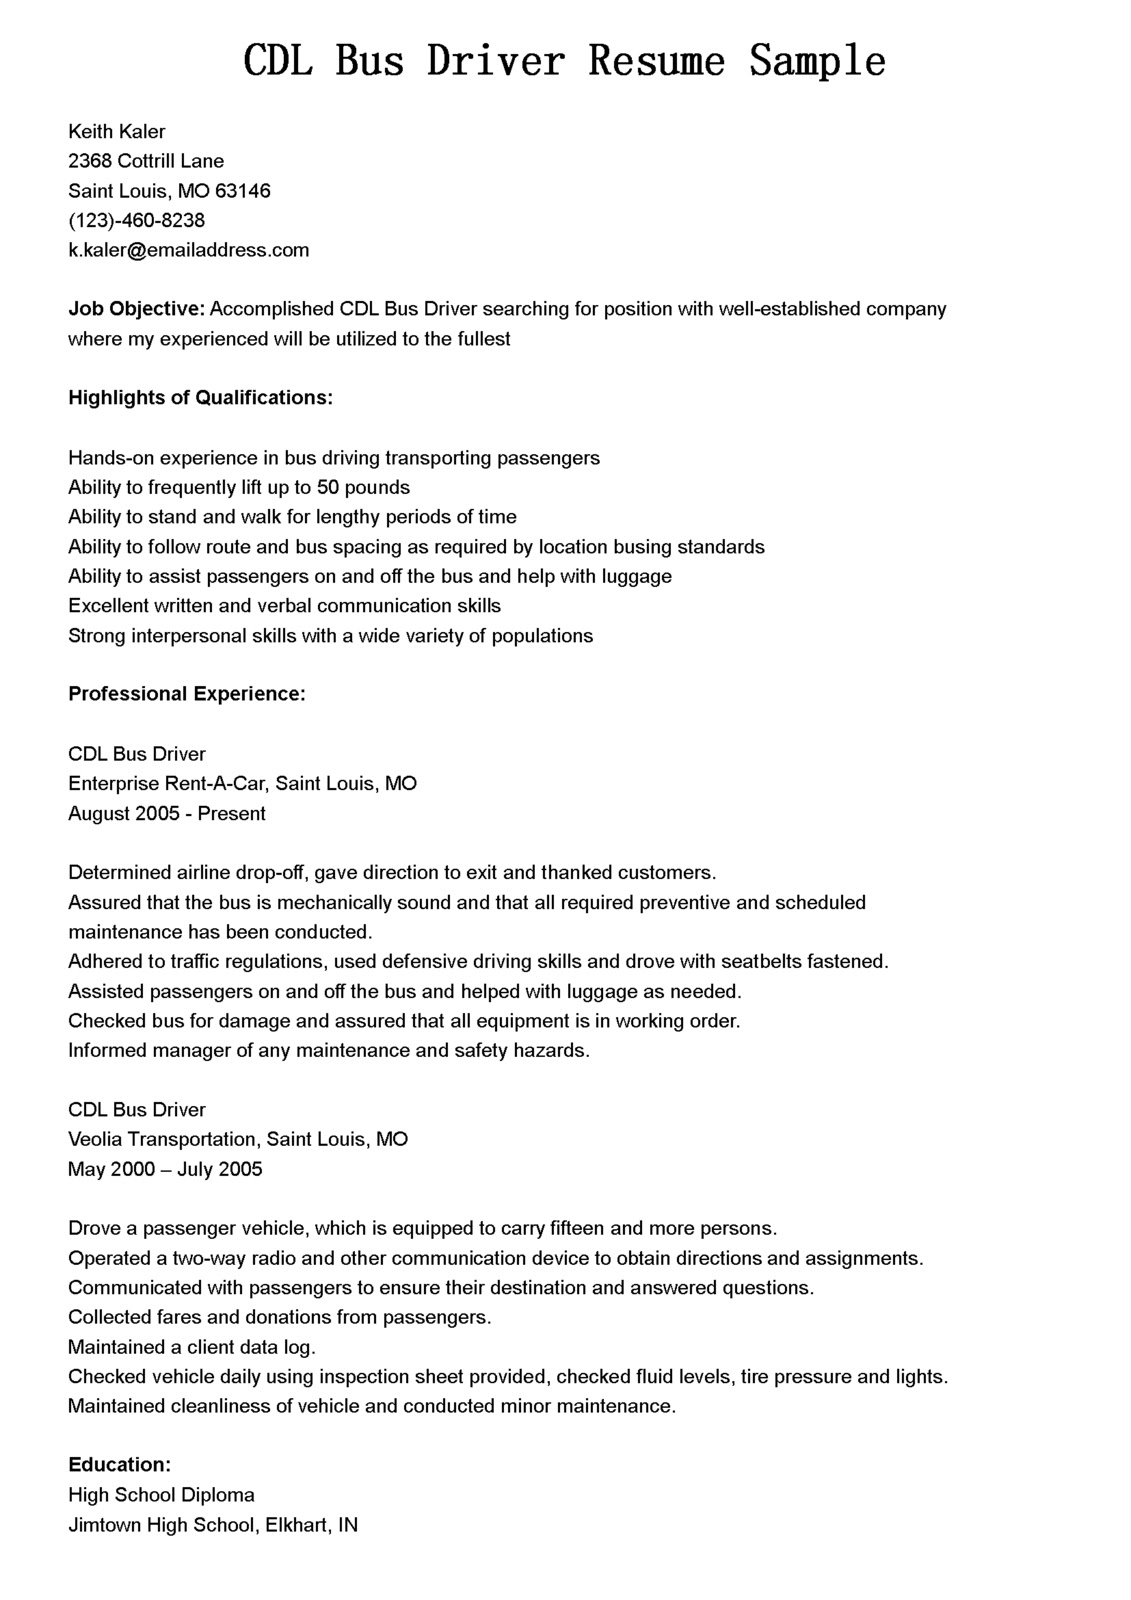 Cdl Driver Resume Sample Driver Resumes Cdl Bus Driver Resume Sample